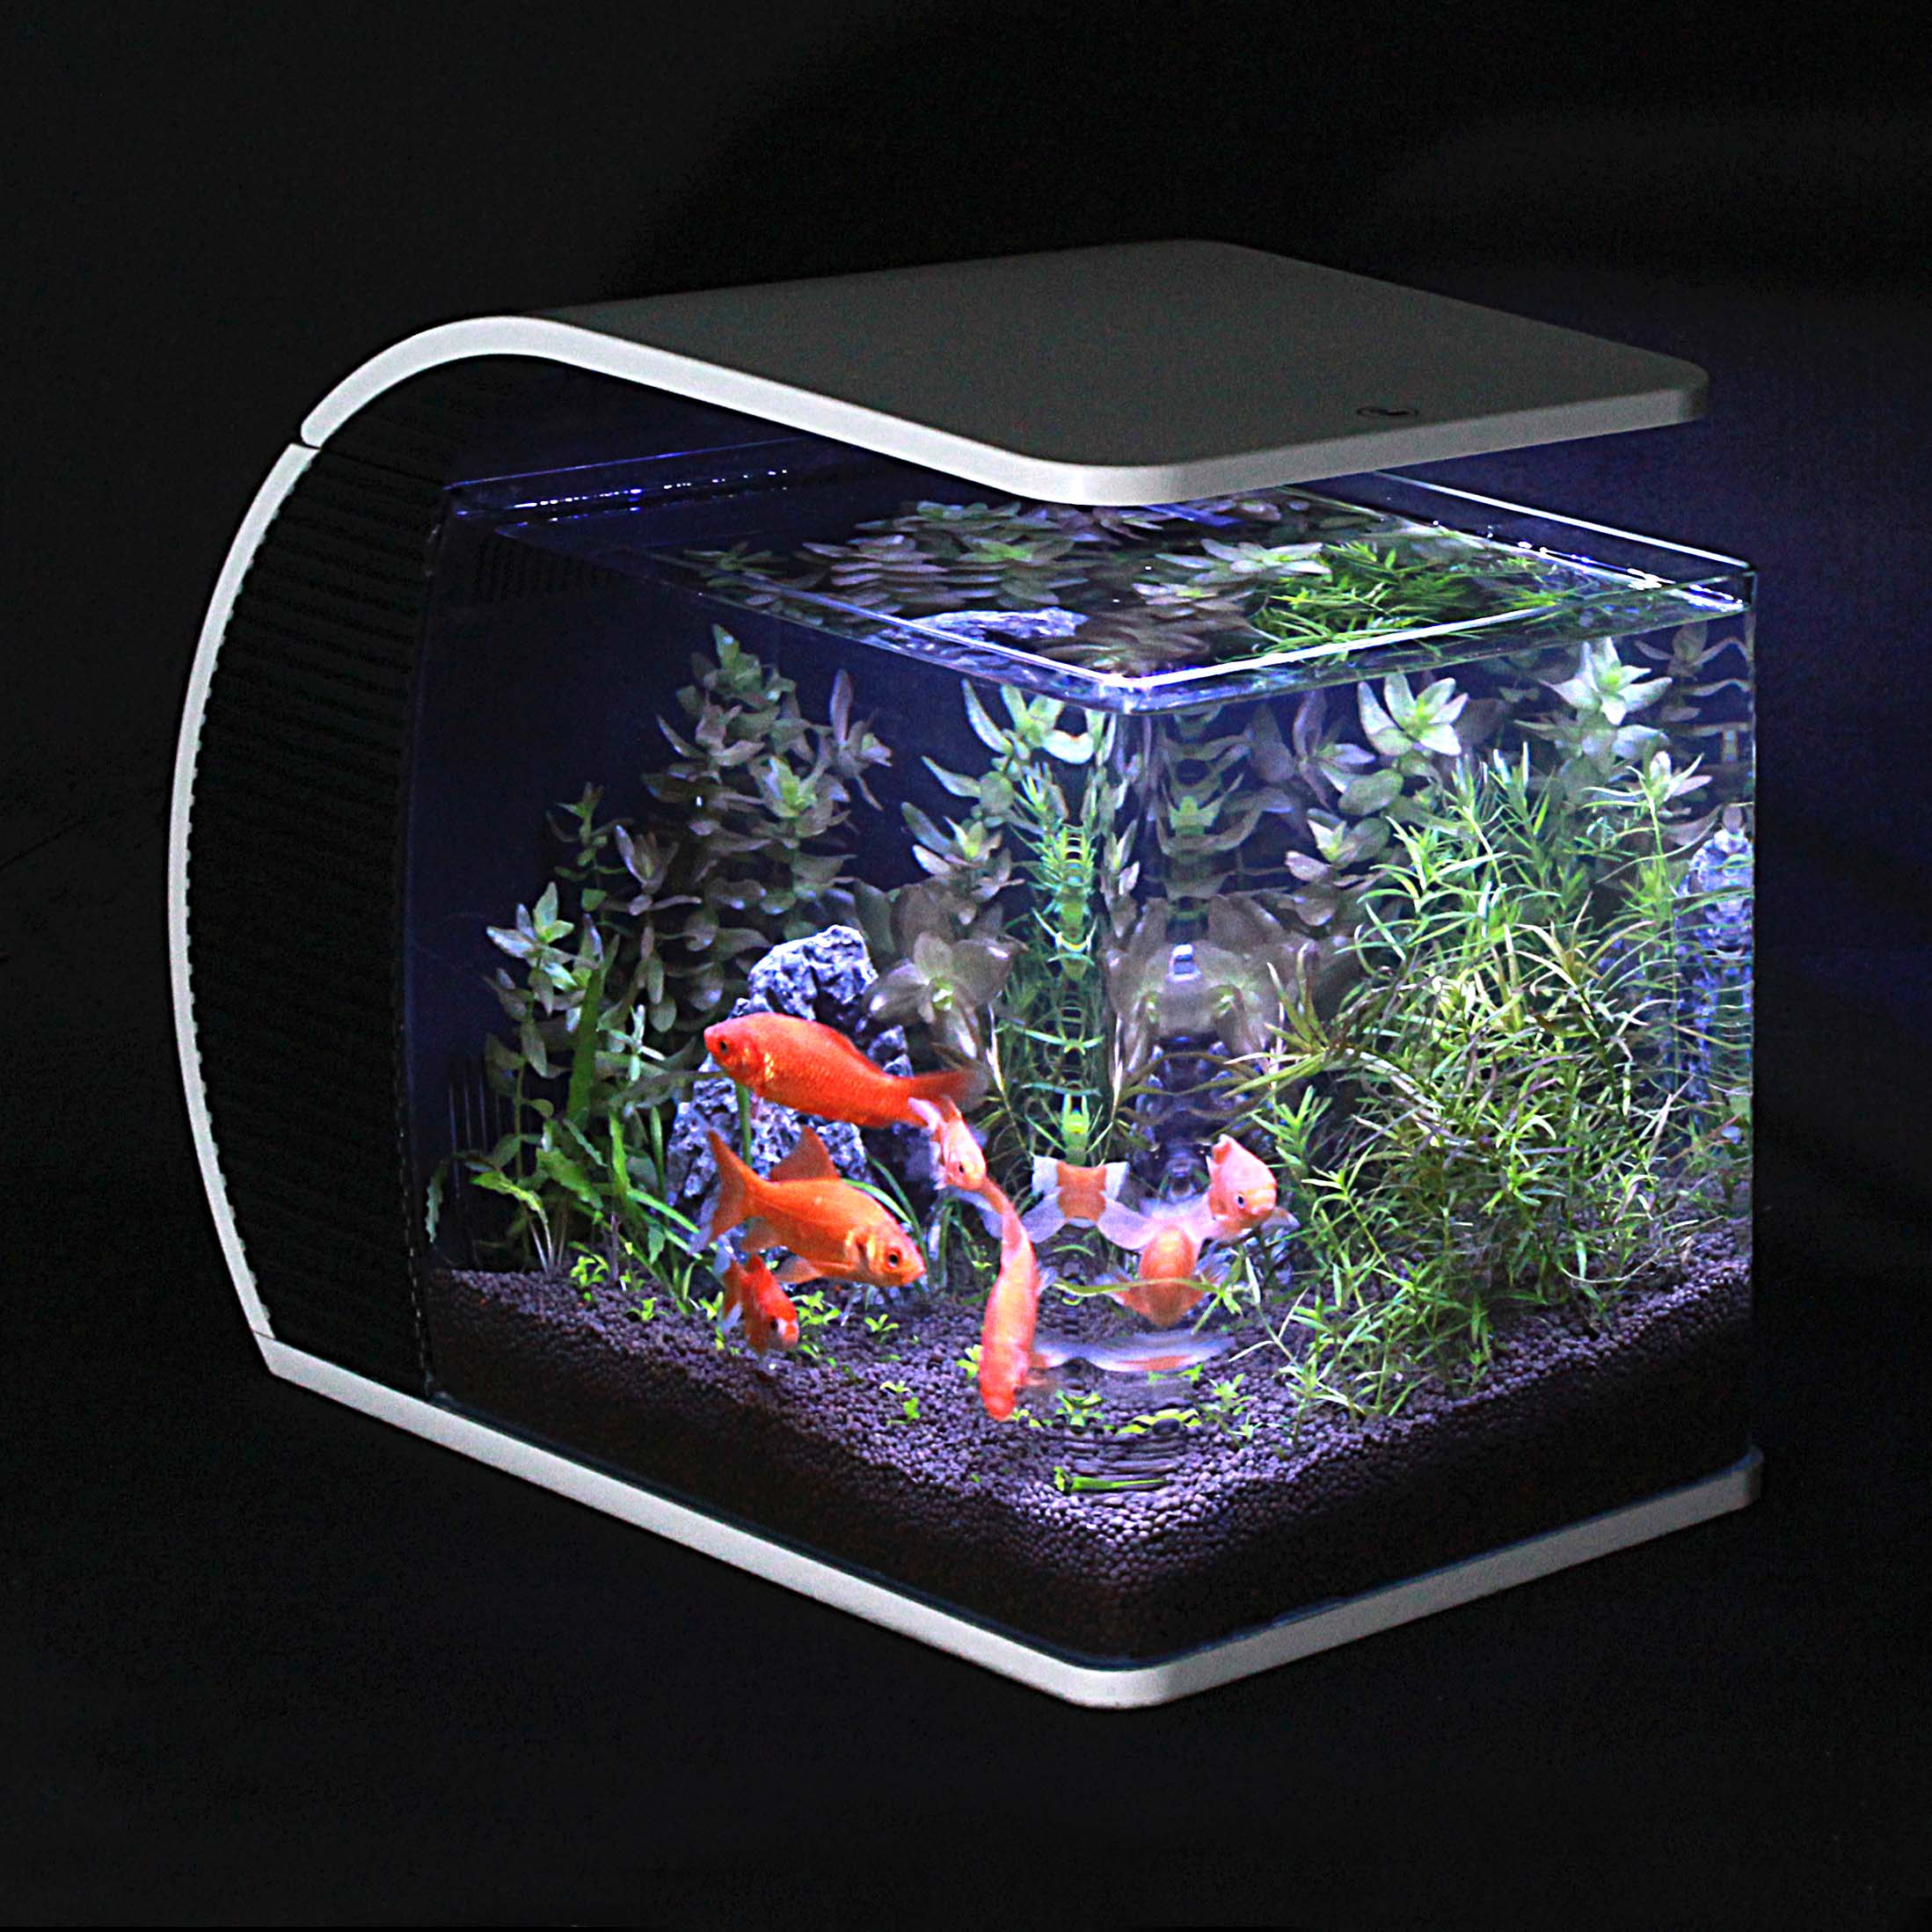 Free shipping ada ya diya tropical aquarium fish tank glass tabletop 50cm level mini aquarium fish tank ecology